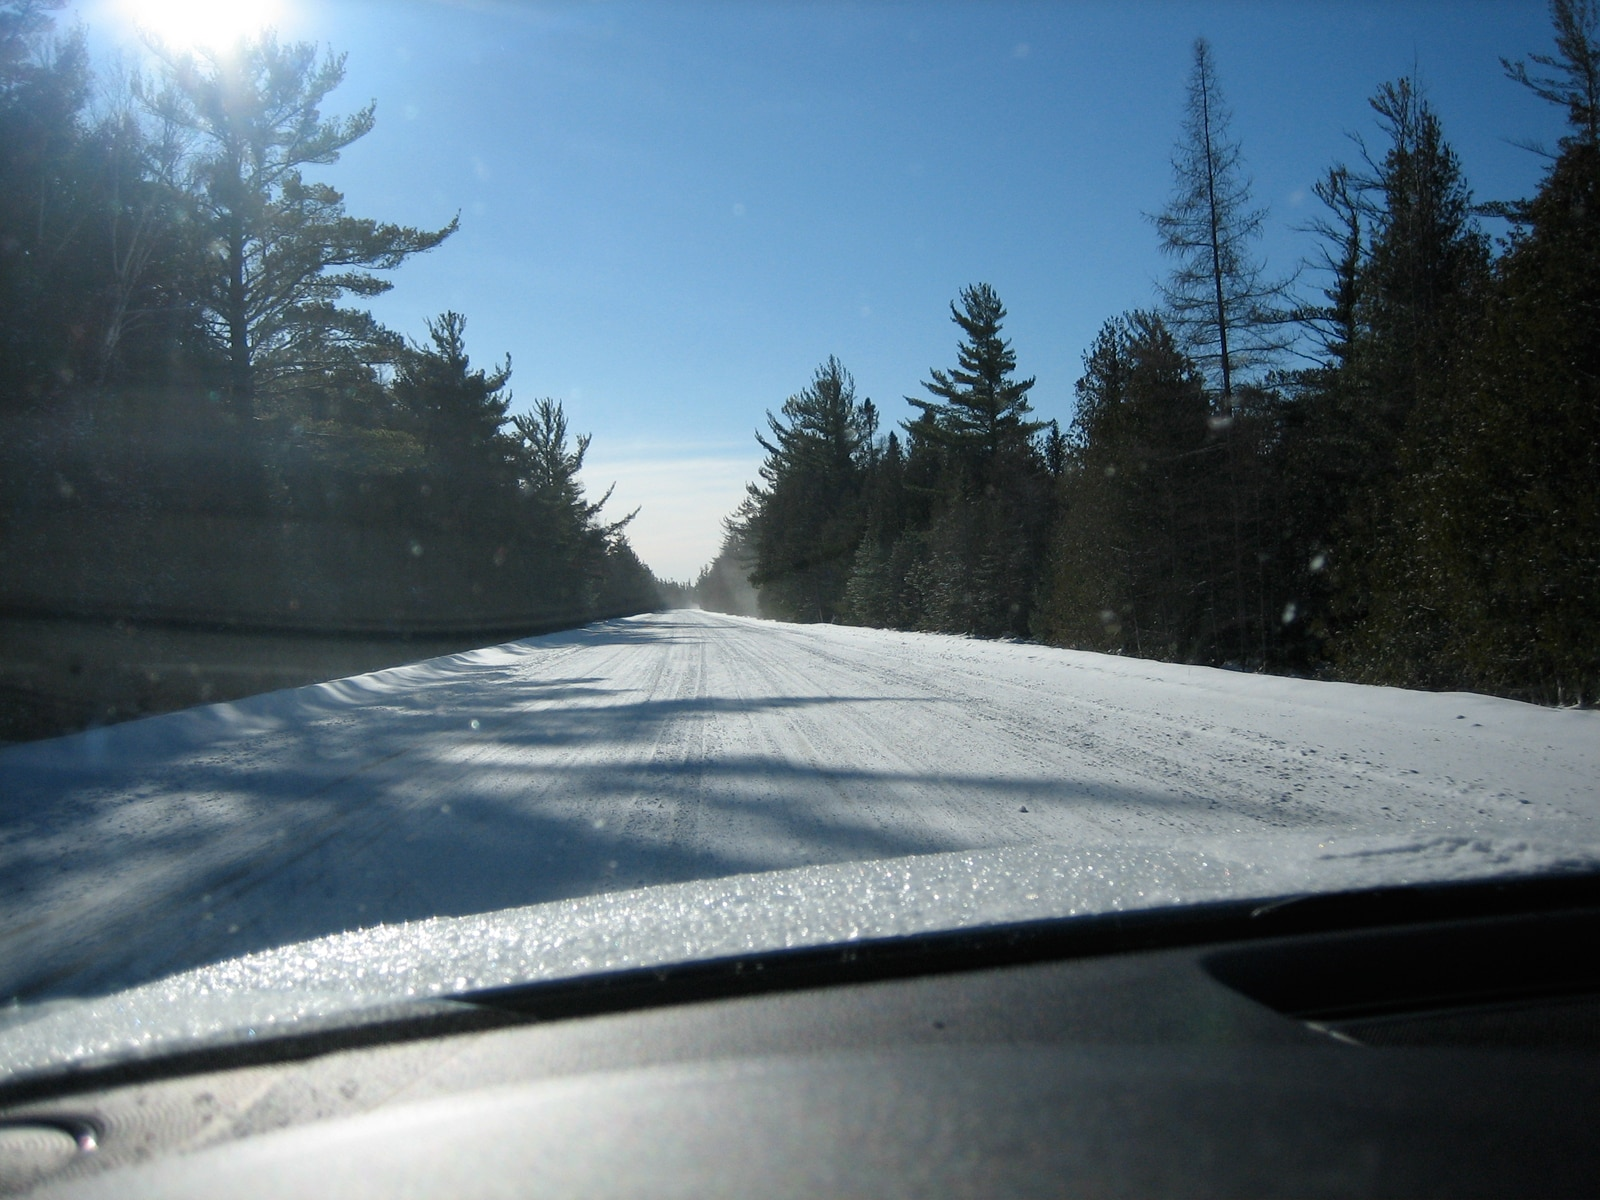 0911 01 Z Snowtires Driving On Snow